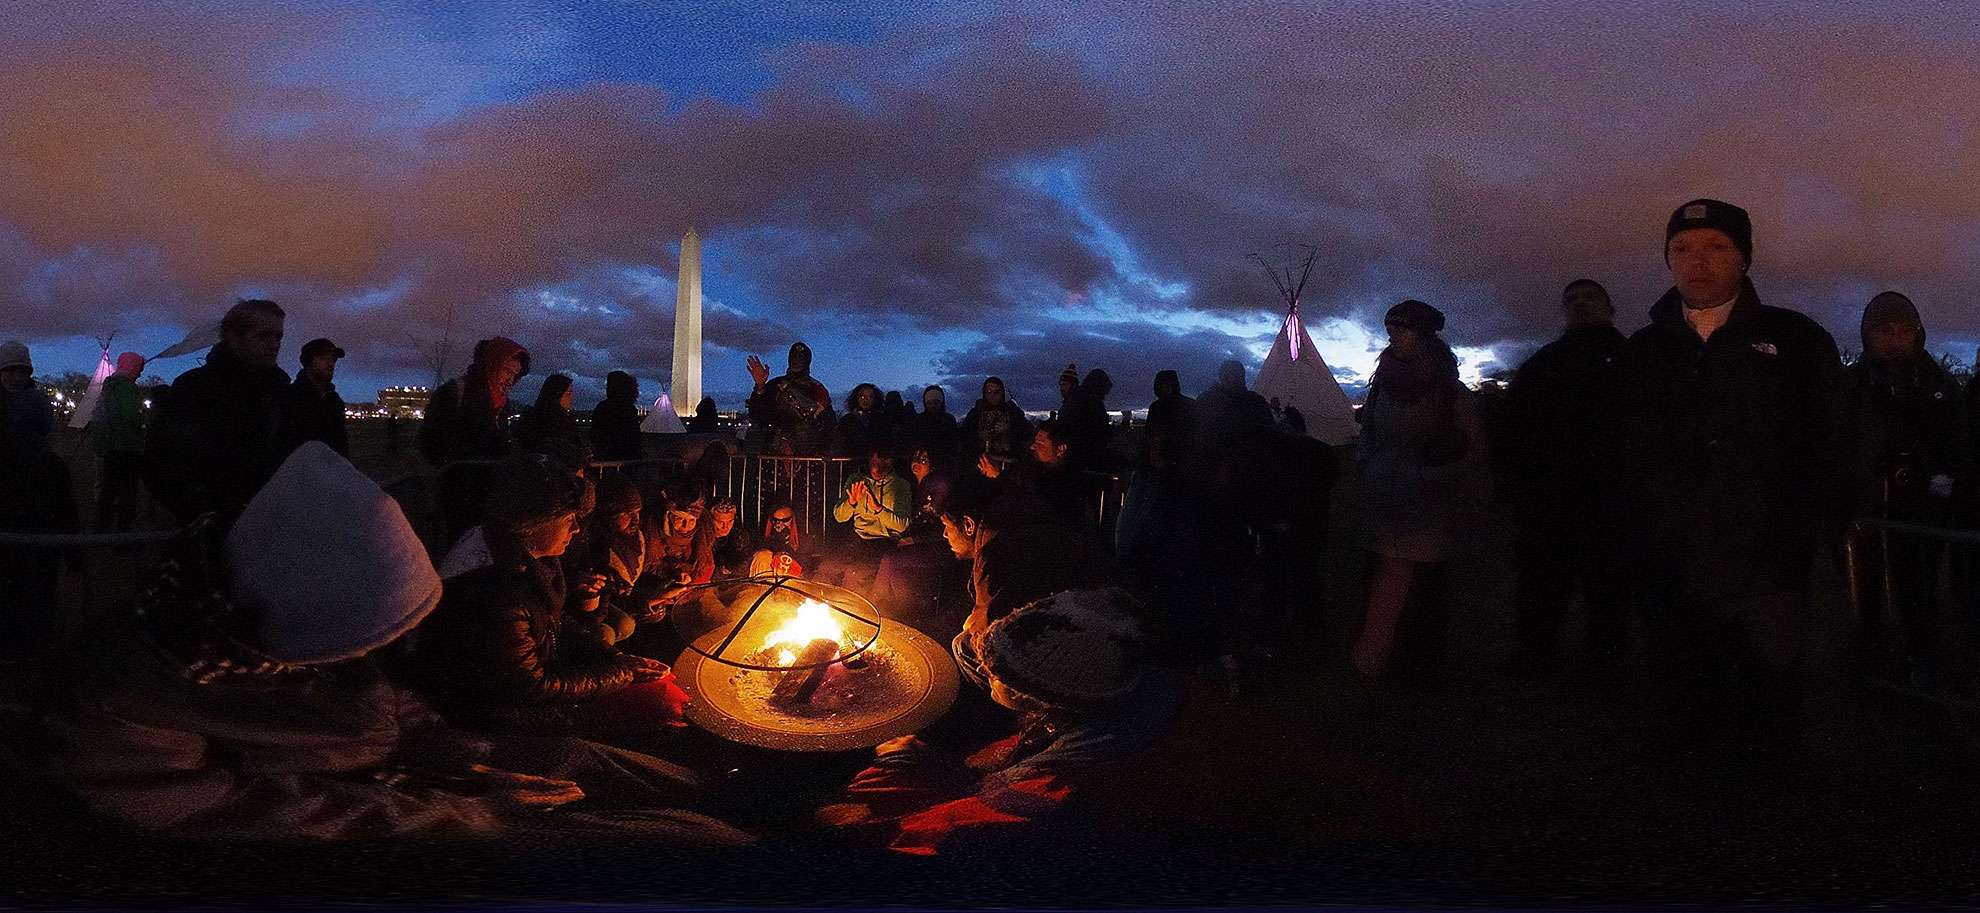 Activists gather around a sacred fire at the ground of Washington Monument after a day of protest on Mar. 10, 2017, in Washington, D.C. The Standing Rock Sioux Tribe staged protests outside the Army Corps of Engineers Office, the Trump International Hotel, and a march to the White House to urge for halting the construction of the Dakota Access Pipeline.